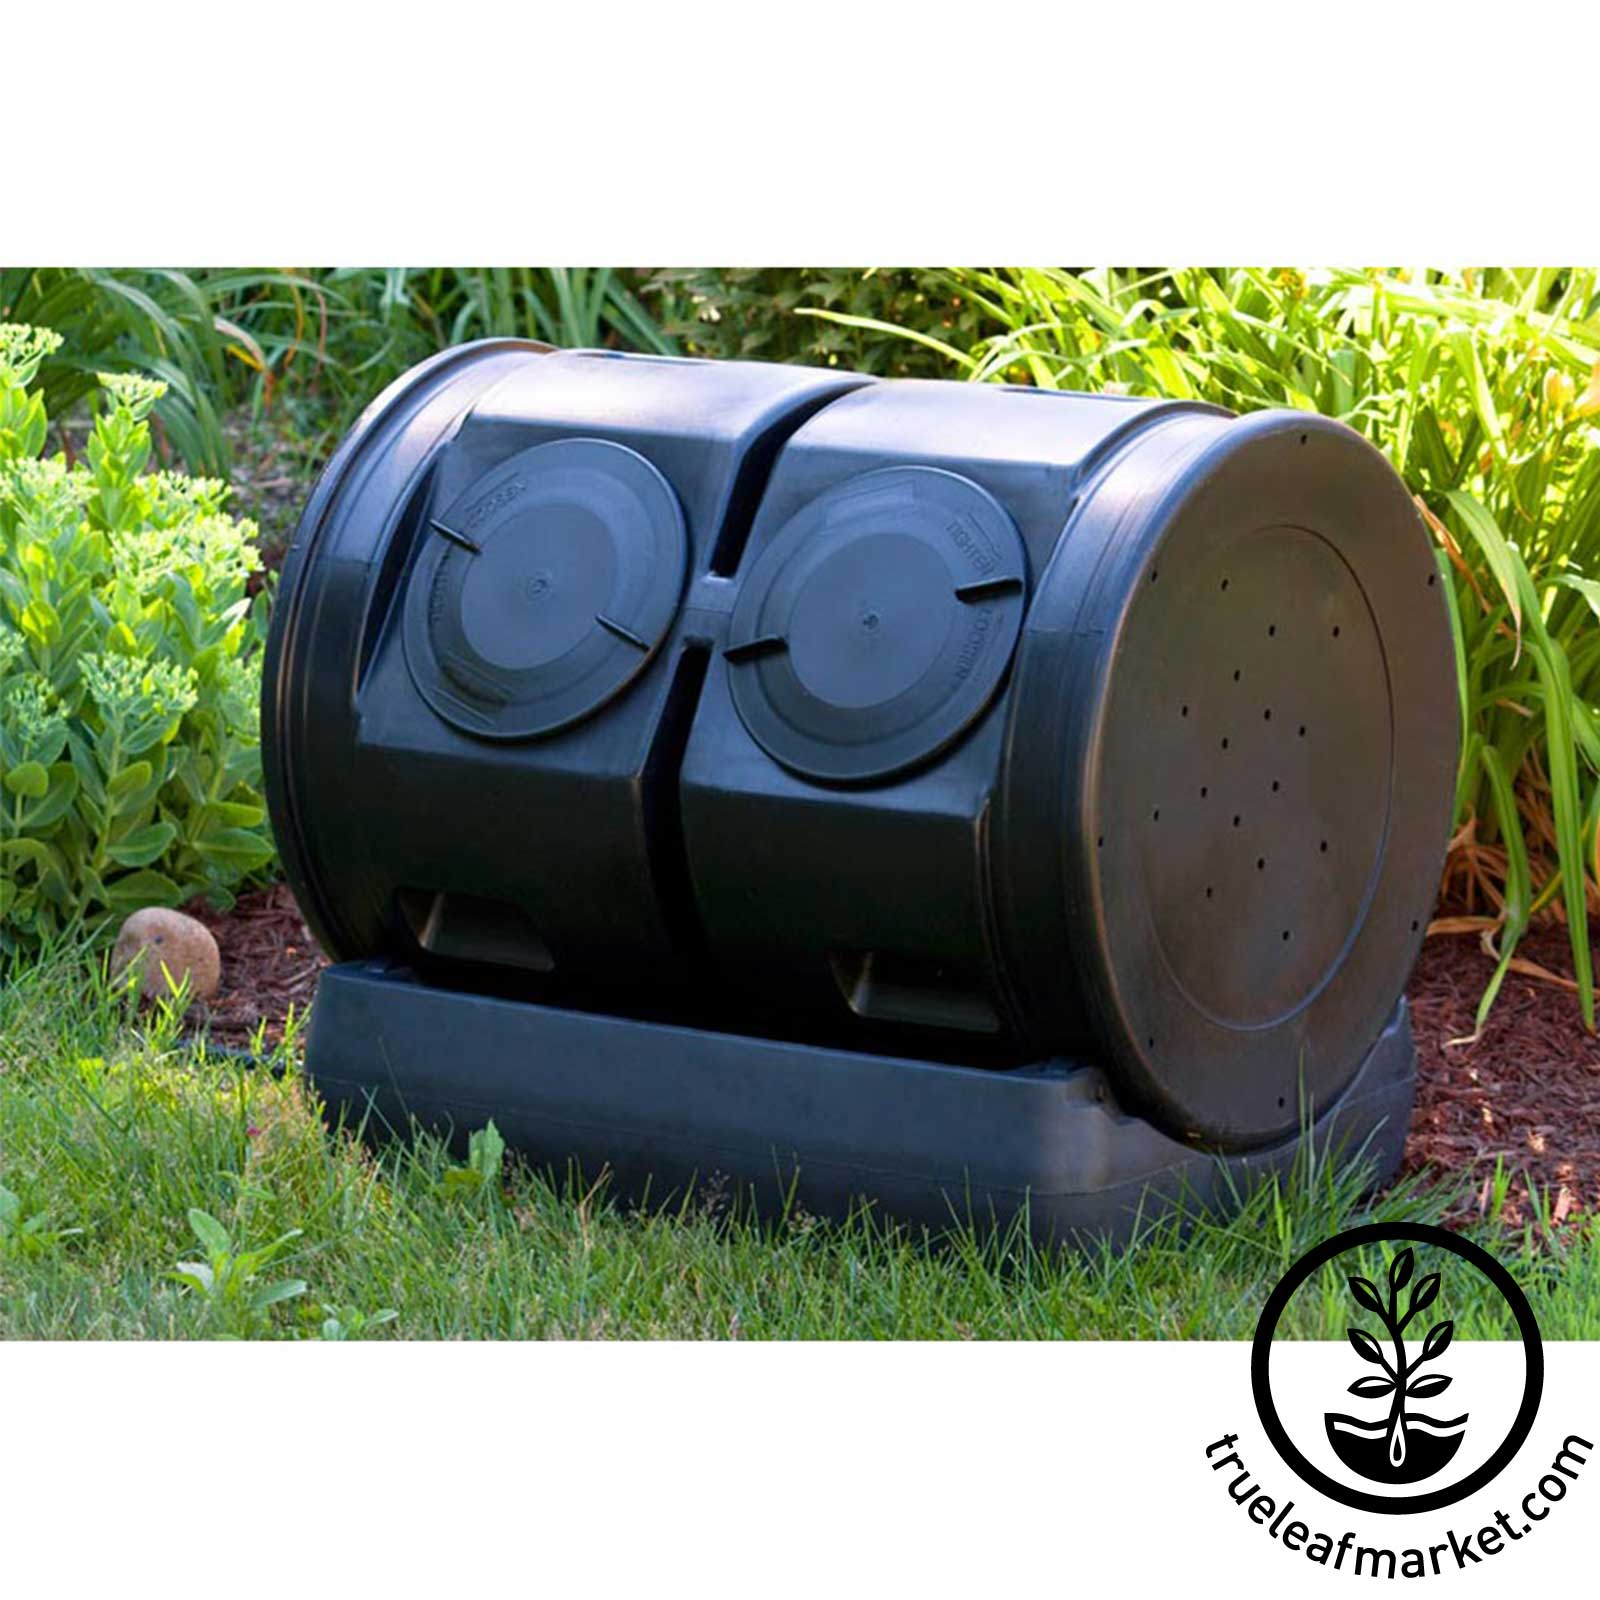 Good Ideas Composter: Compost Wizard Dueling Tumbler good ideas, compost bin, composter, compost tumbler, wizard, dueling